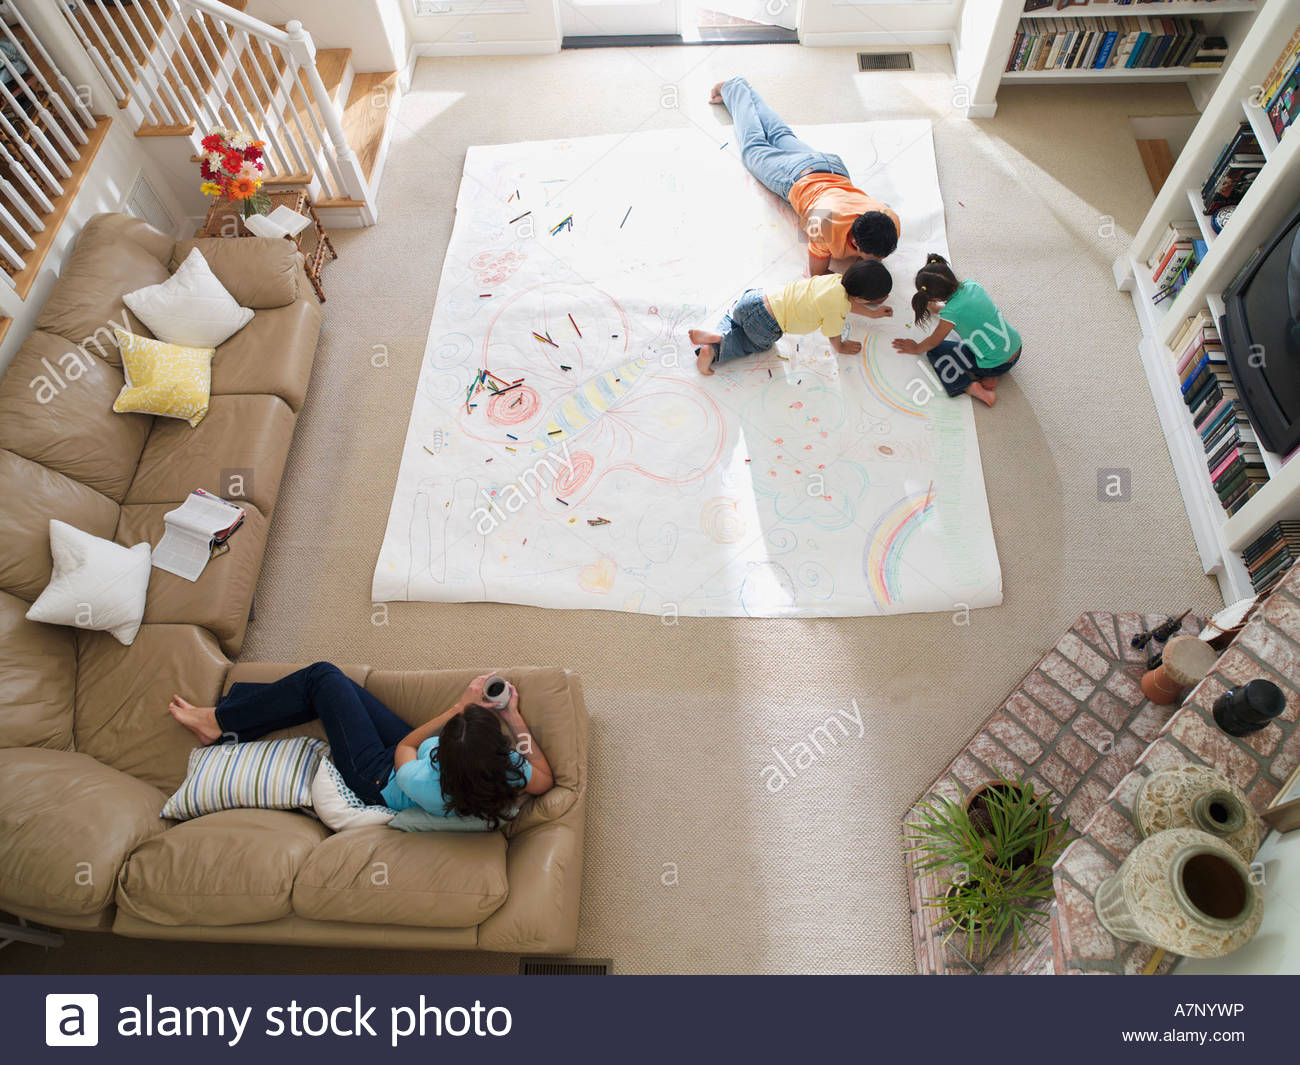 Family drawing on large piece of paper laid out on living room floor overhead view - Stock Image